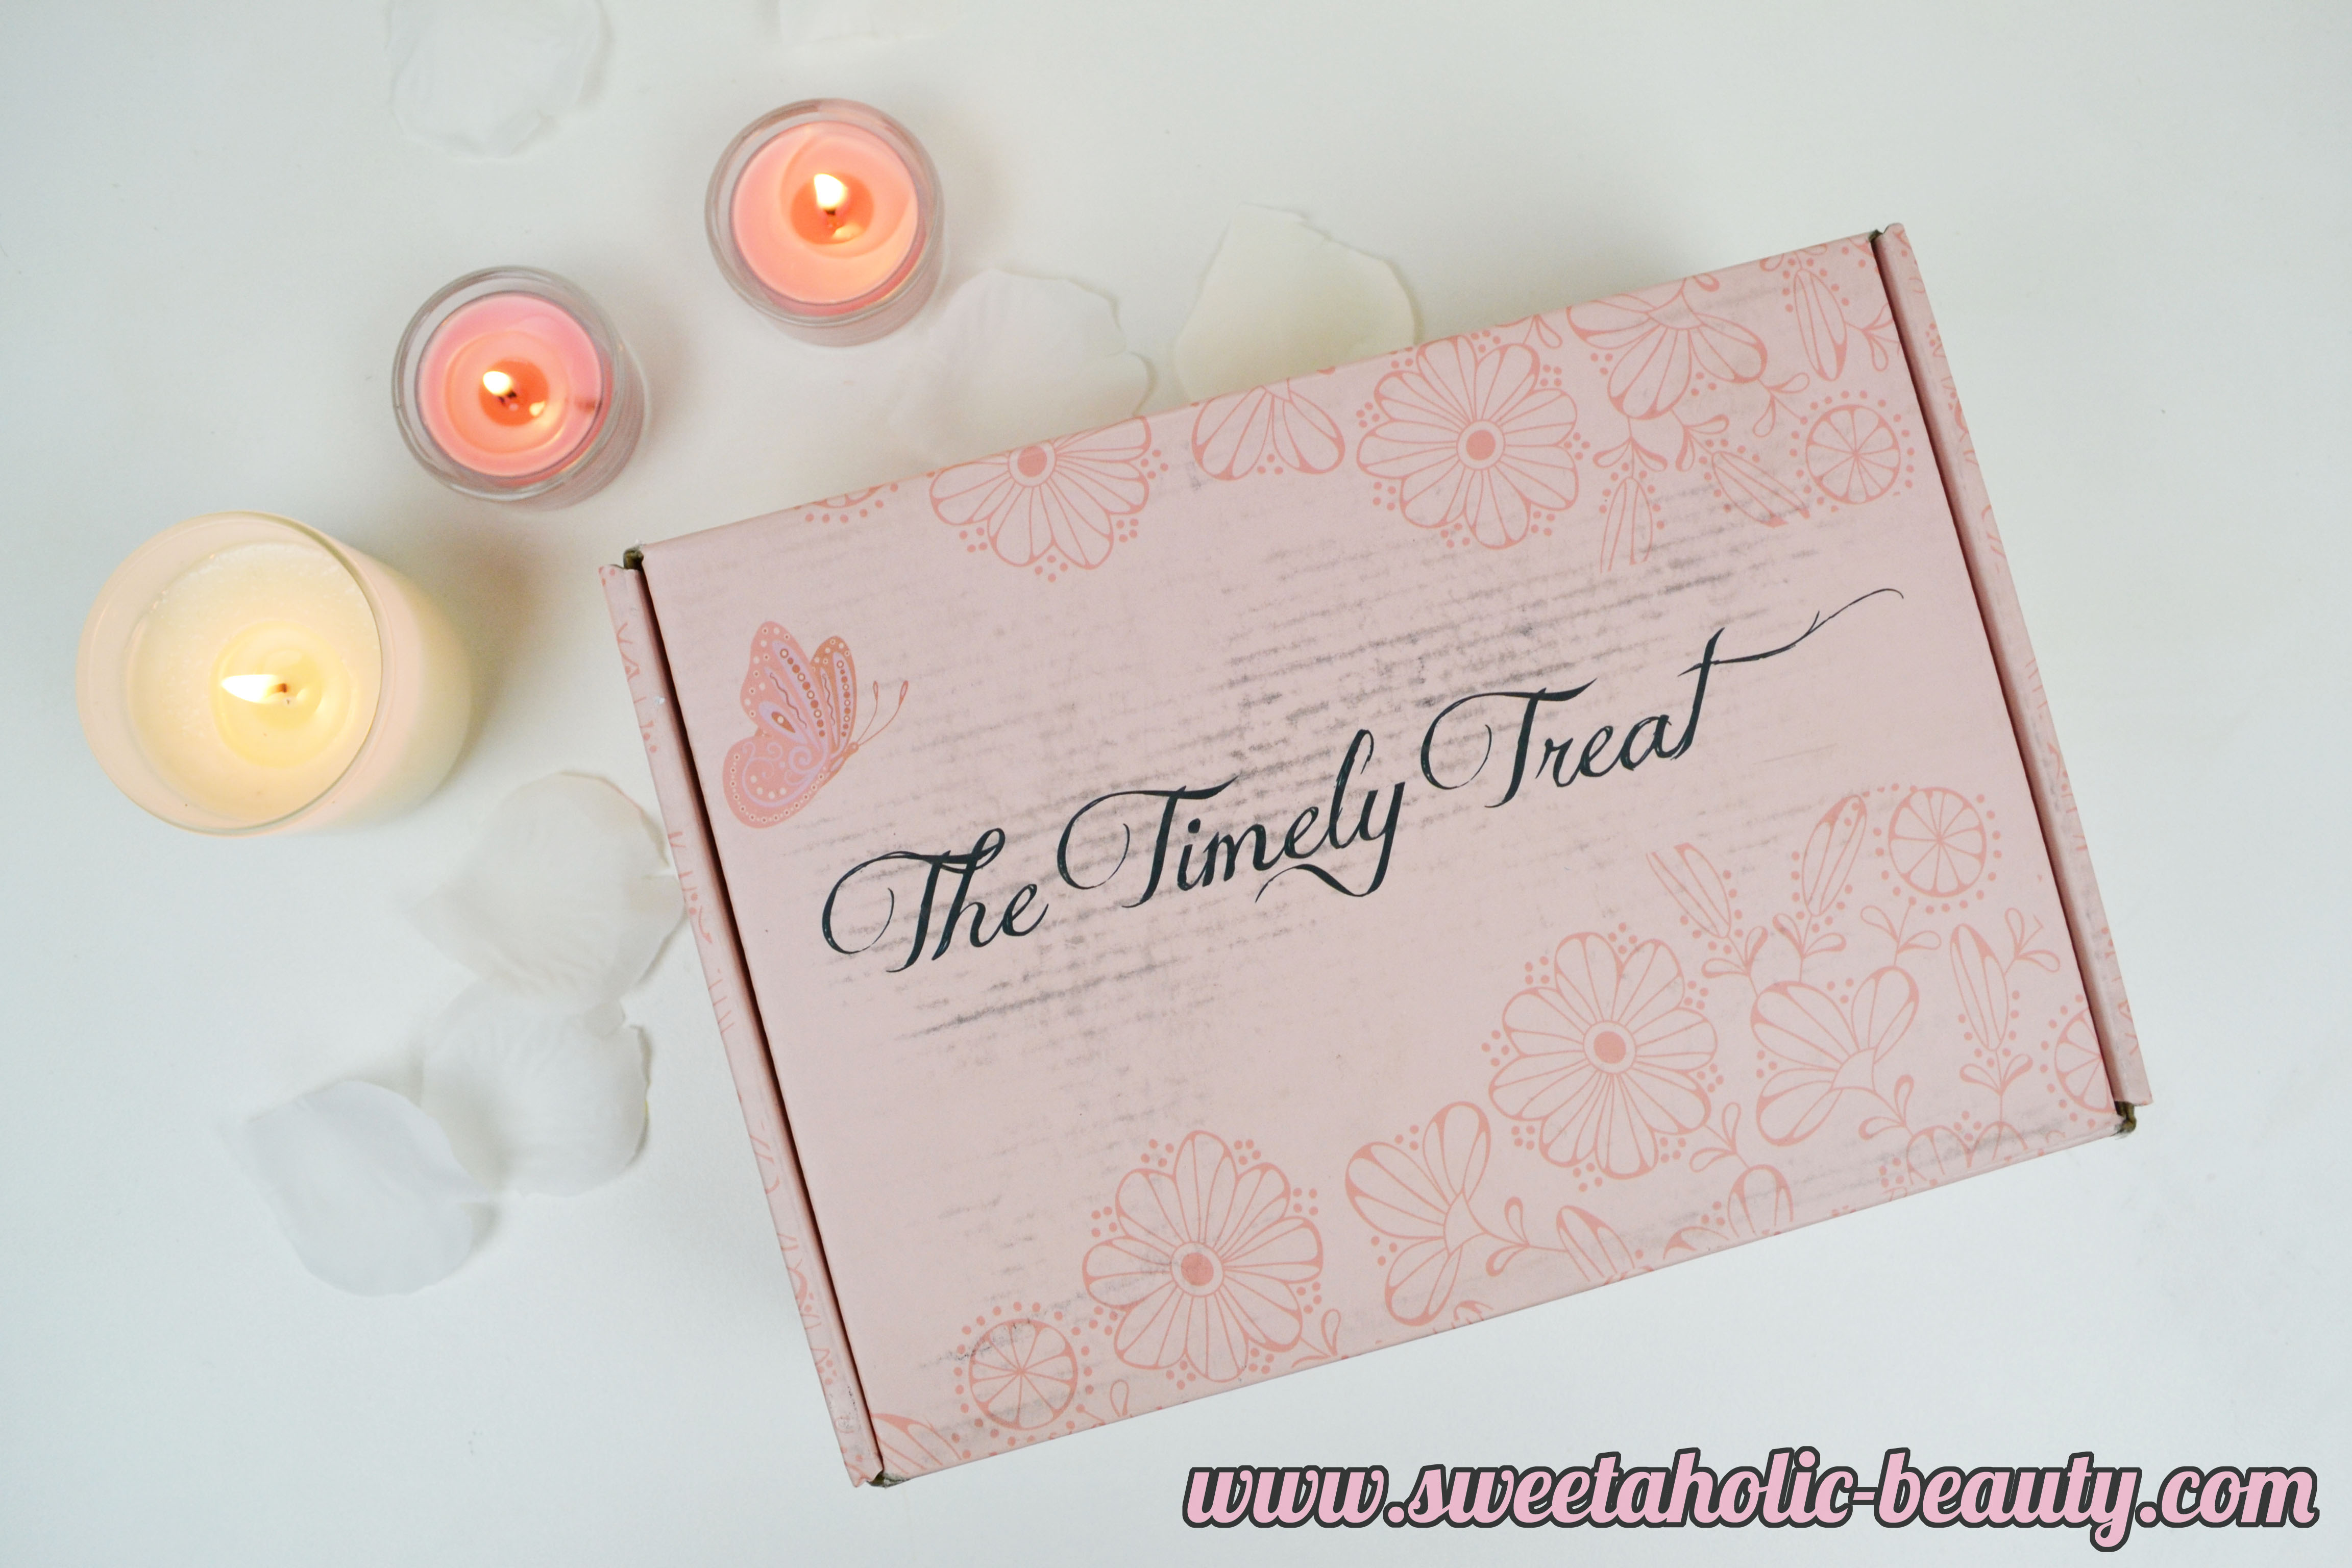 The Timely Treat Review - Sweetaholic Beauty